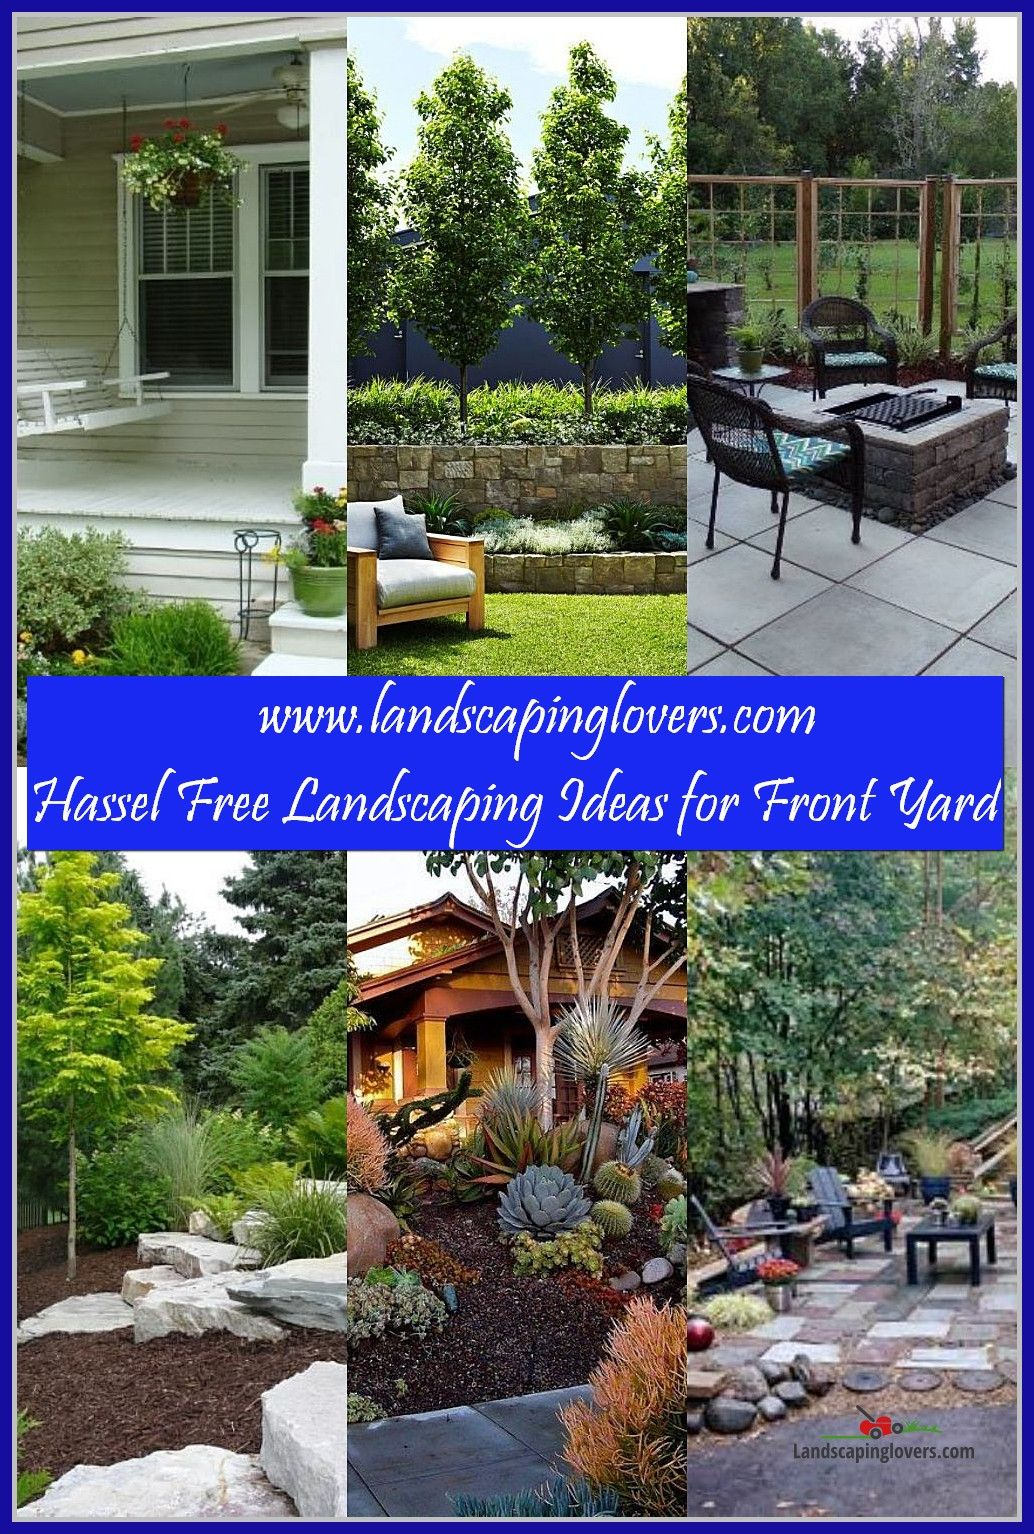 How To Have A Beautiful Landscaped Yard Landscaping Lovers Landscape Projects Yard Landscaping Landscape